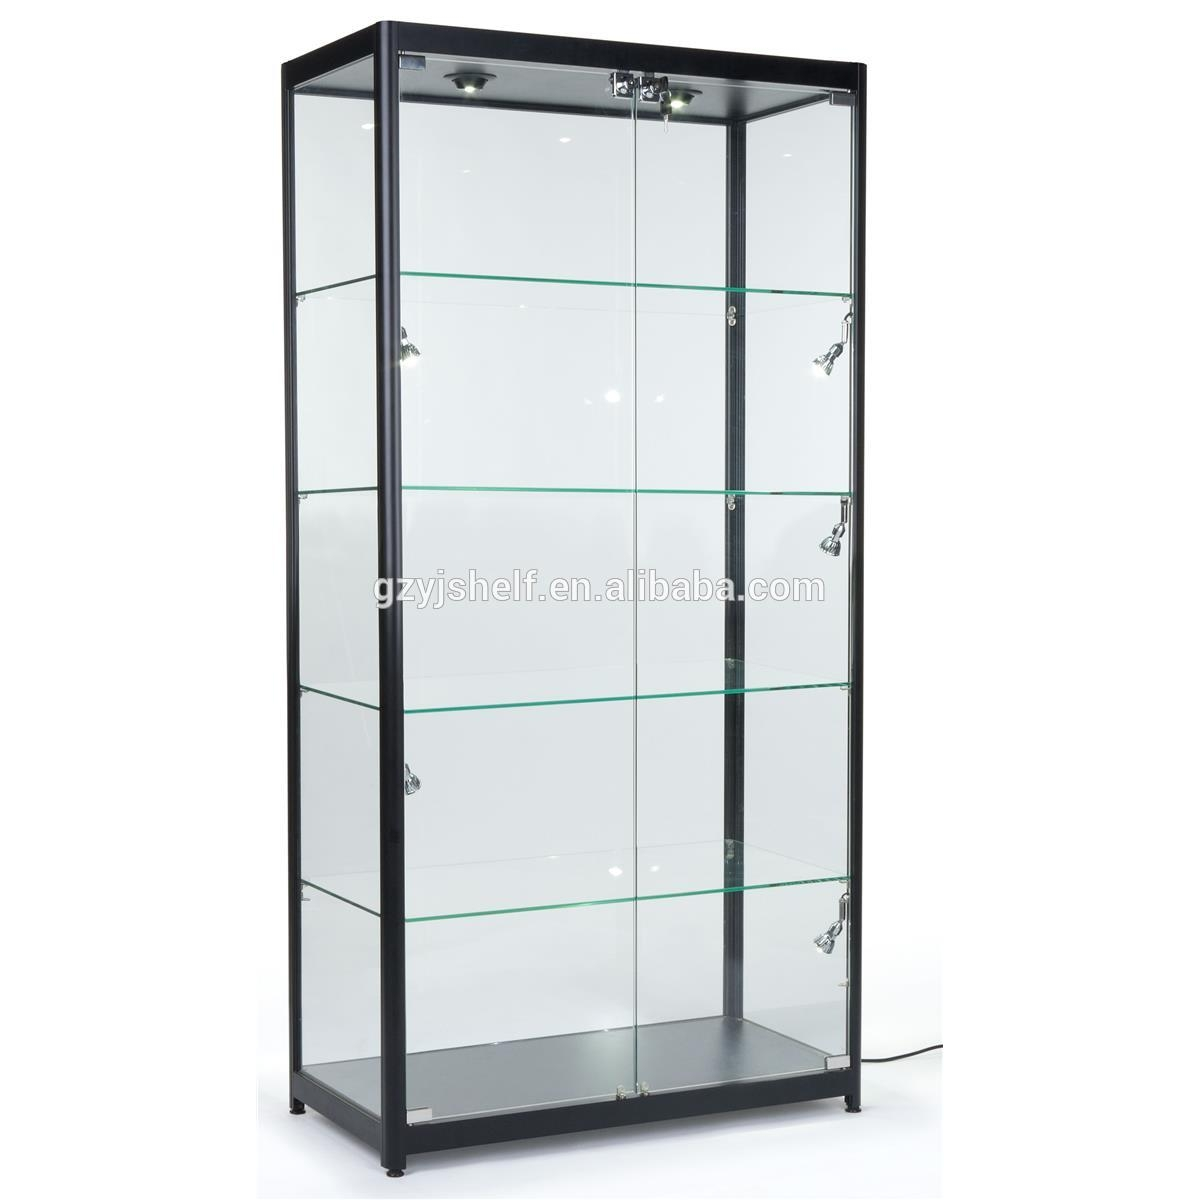 Lovely Tempered Glass Curio Cabinet With 8 Halogen Lights, 78 X 40 X 16.5 Inch